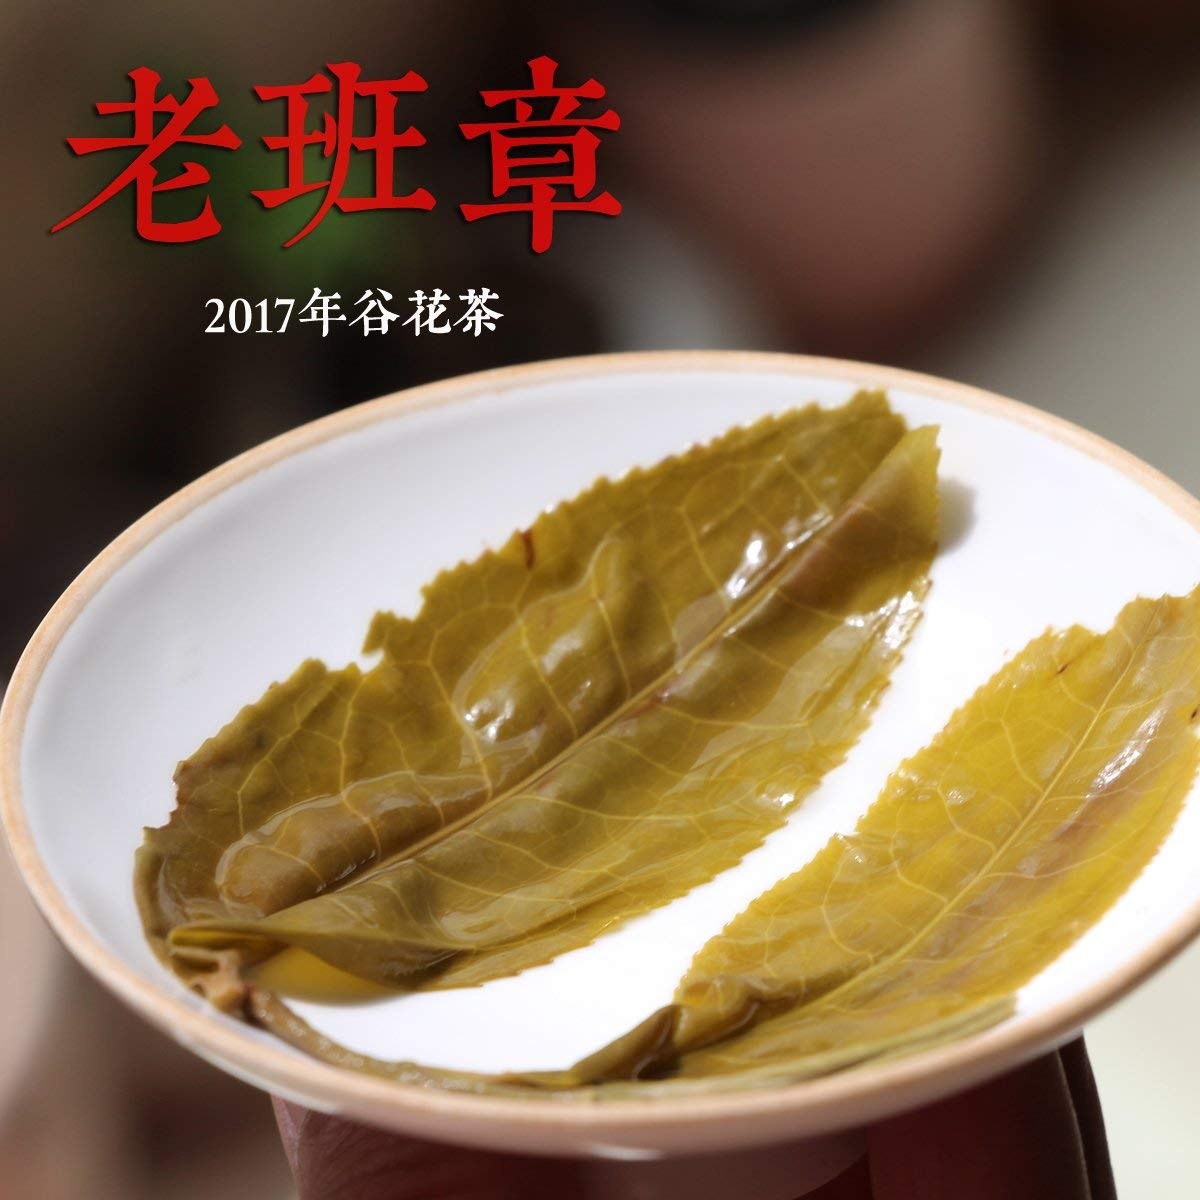 CHIY-GBC Ltd Chinese tasty snack, tea ceremony [CHIY-GBC Ltd Chinese tasty snack, tea ceremonyot] the old class Qiucha 2017 Pu'er Tea autumn tea trees tea tea Valley old class chapter 100 grams